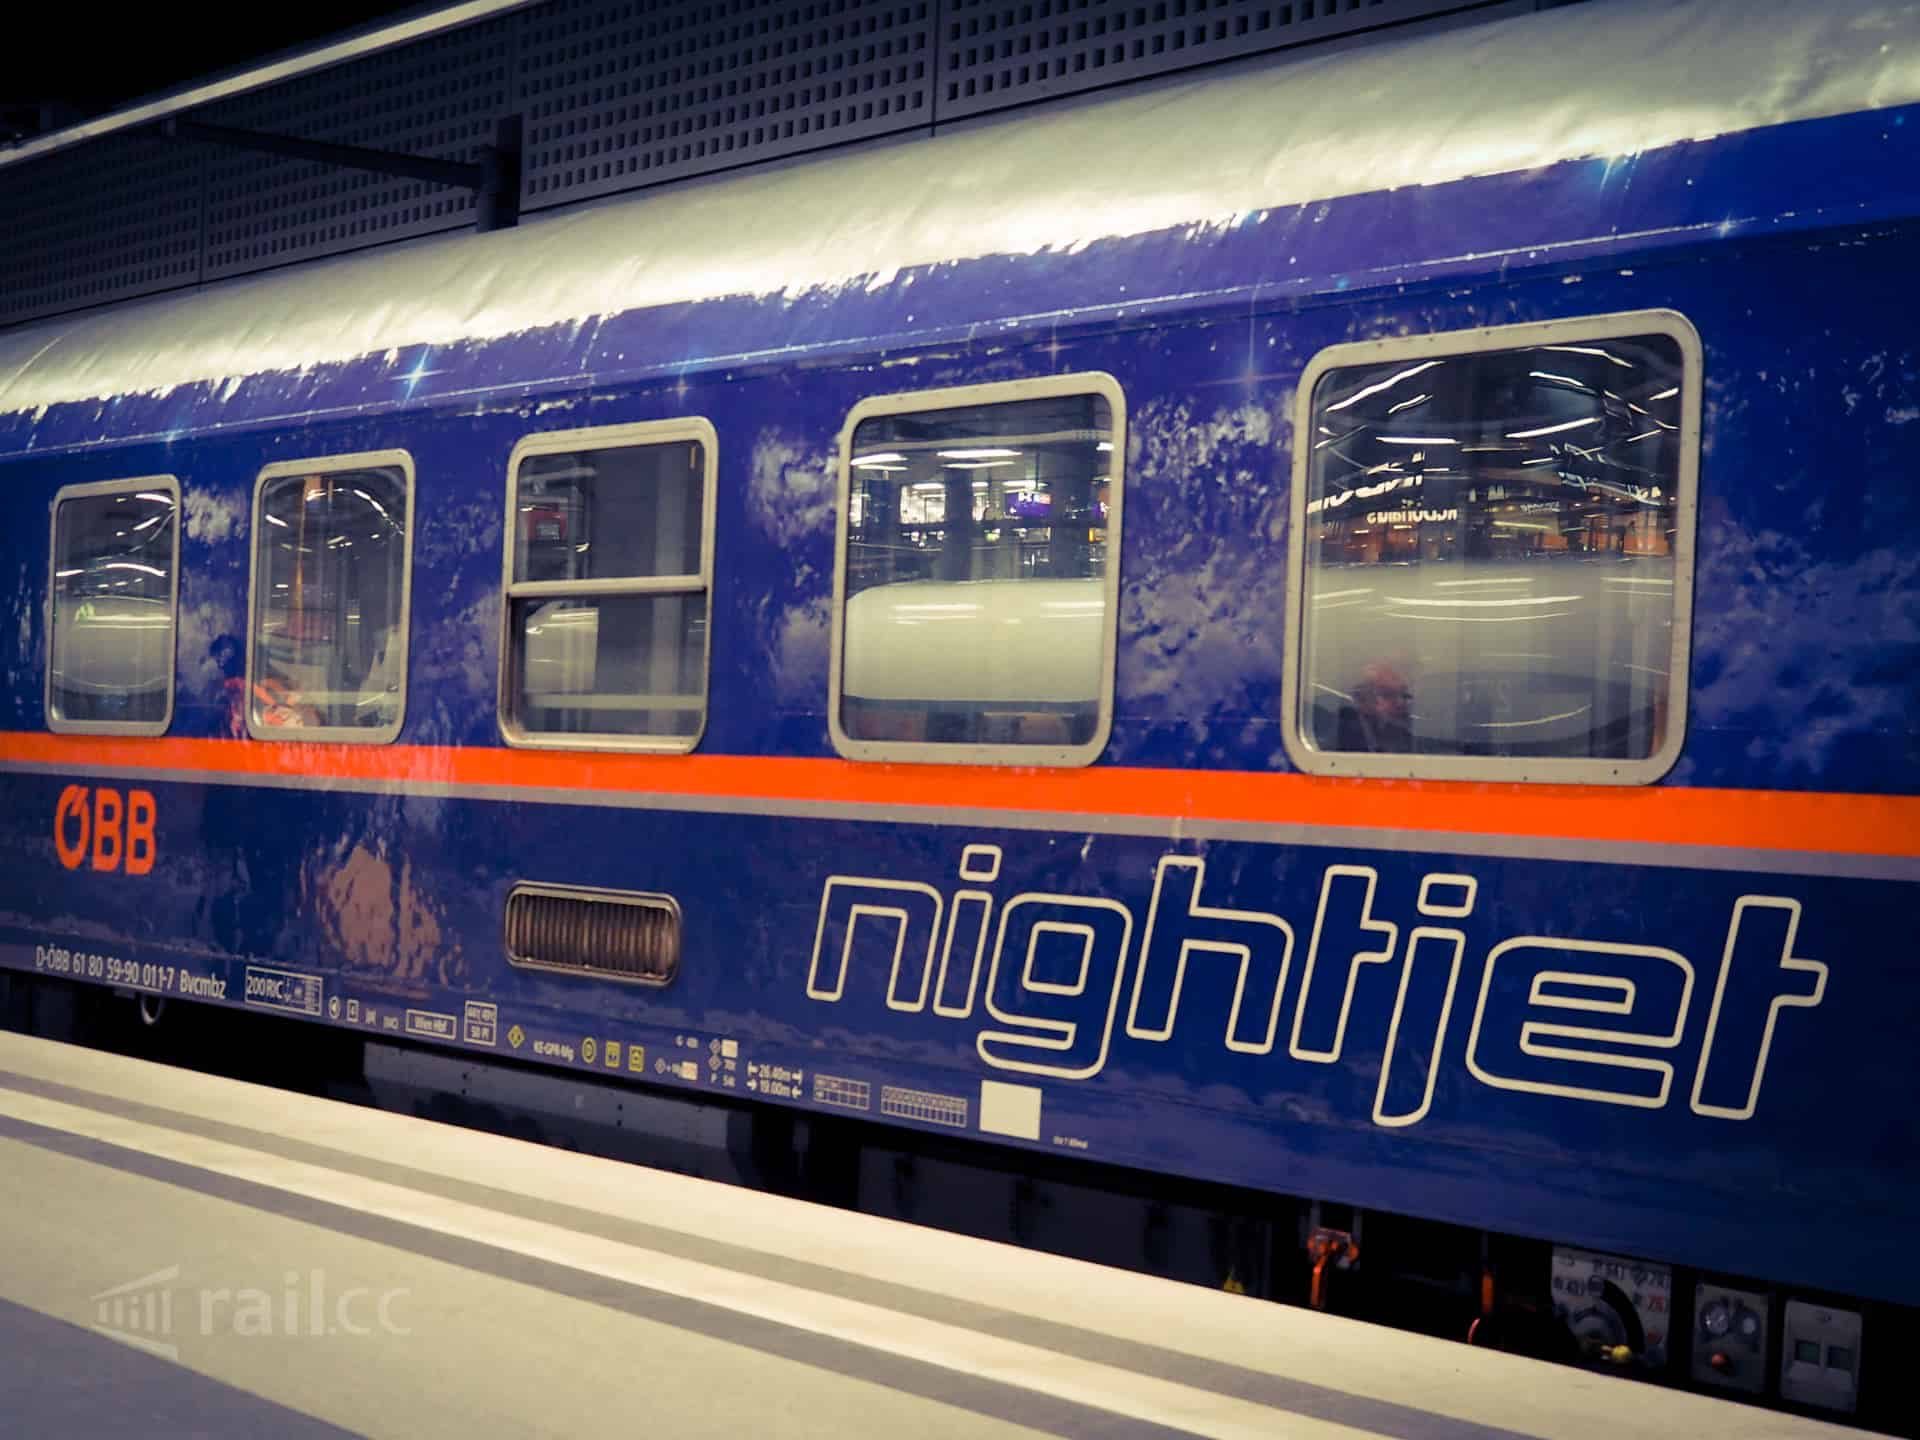 Nightjet train in Berlin main station